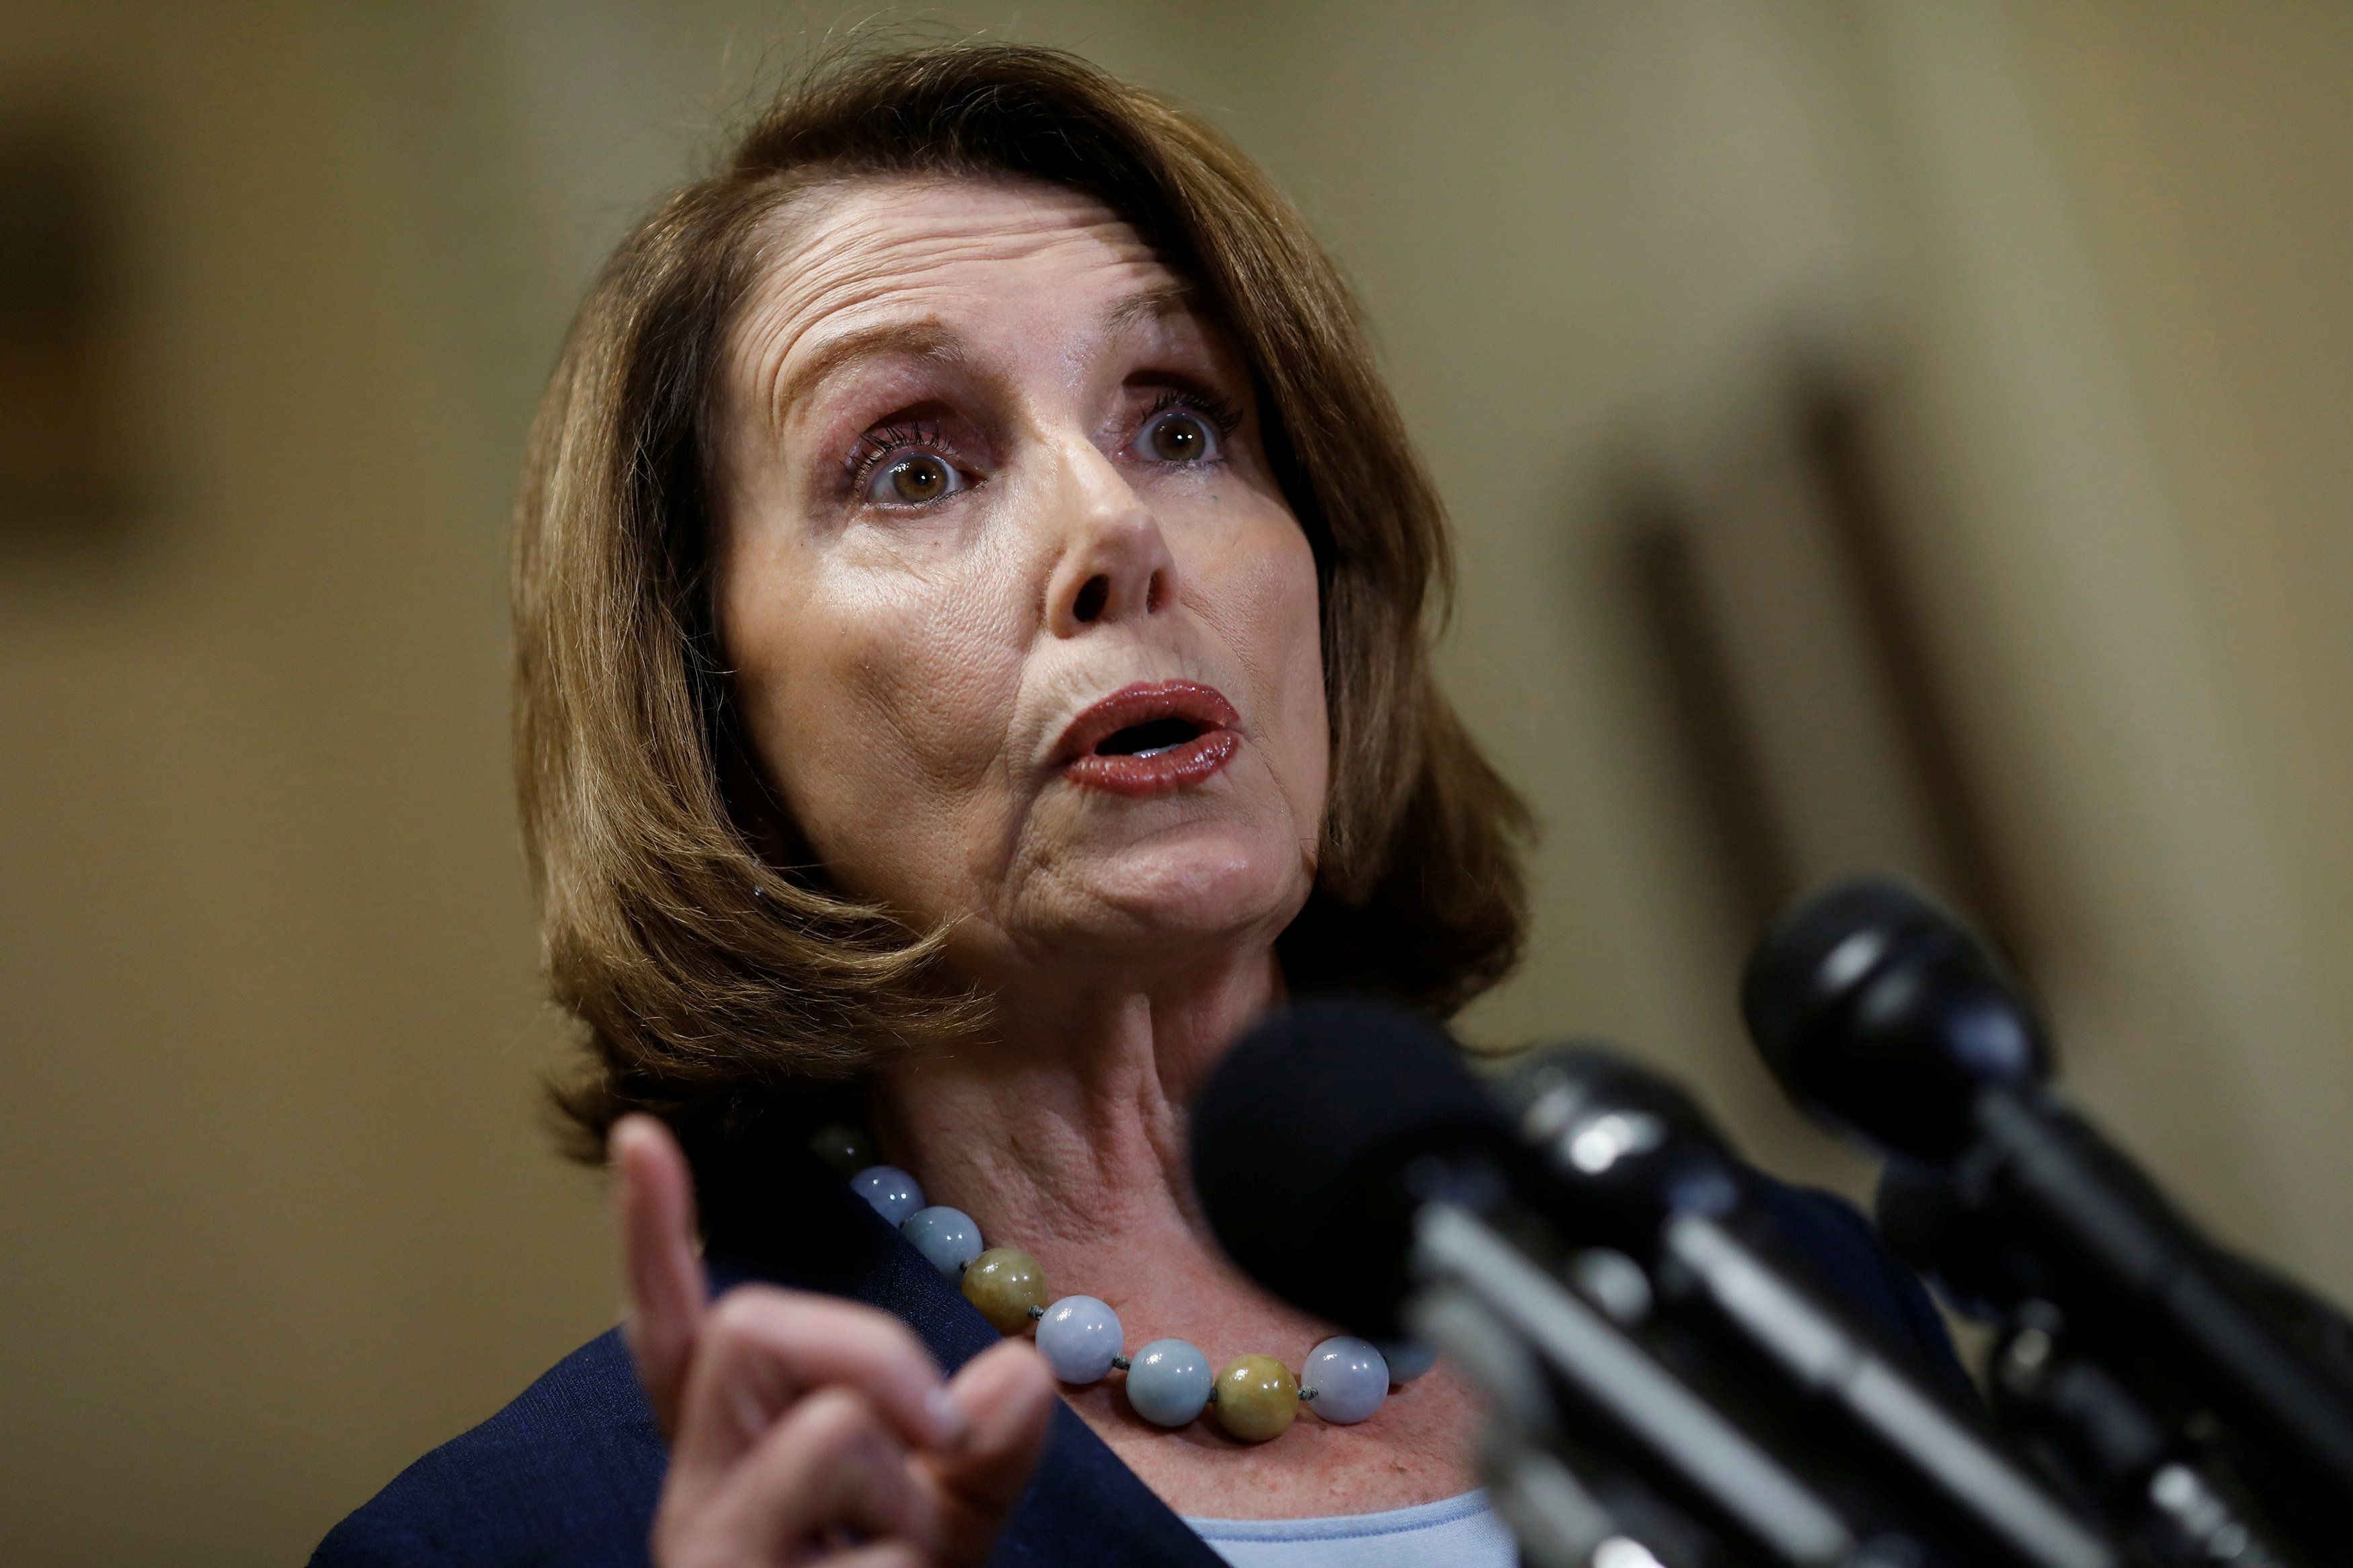 House Minority Leader Nancy Pelosi speaks at a press conference about the Congressional Budget Office's report on the American Health Care Act at the Capitol in Washington, D.C., U.S. March 13, 2017. REUTERS/Aaron P. Bernstein